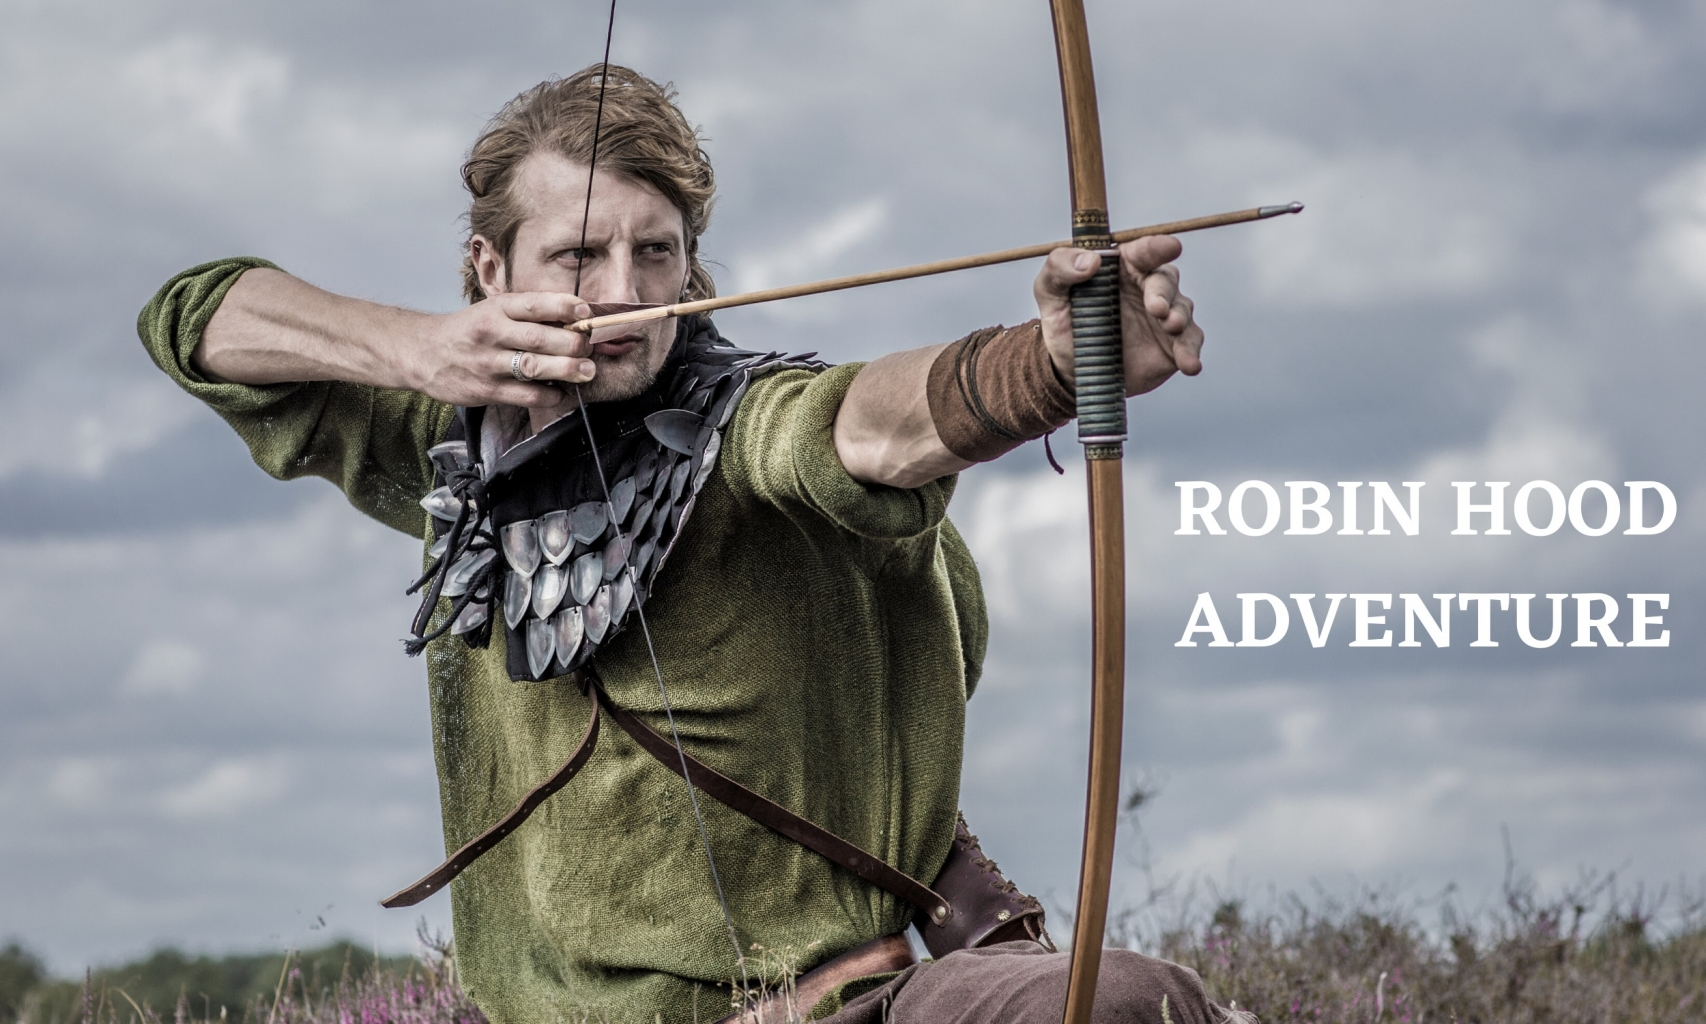 Robin Hood Adventure